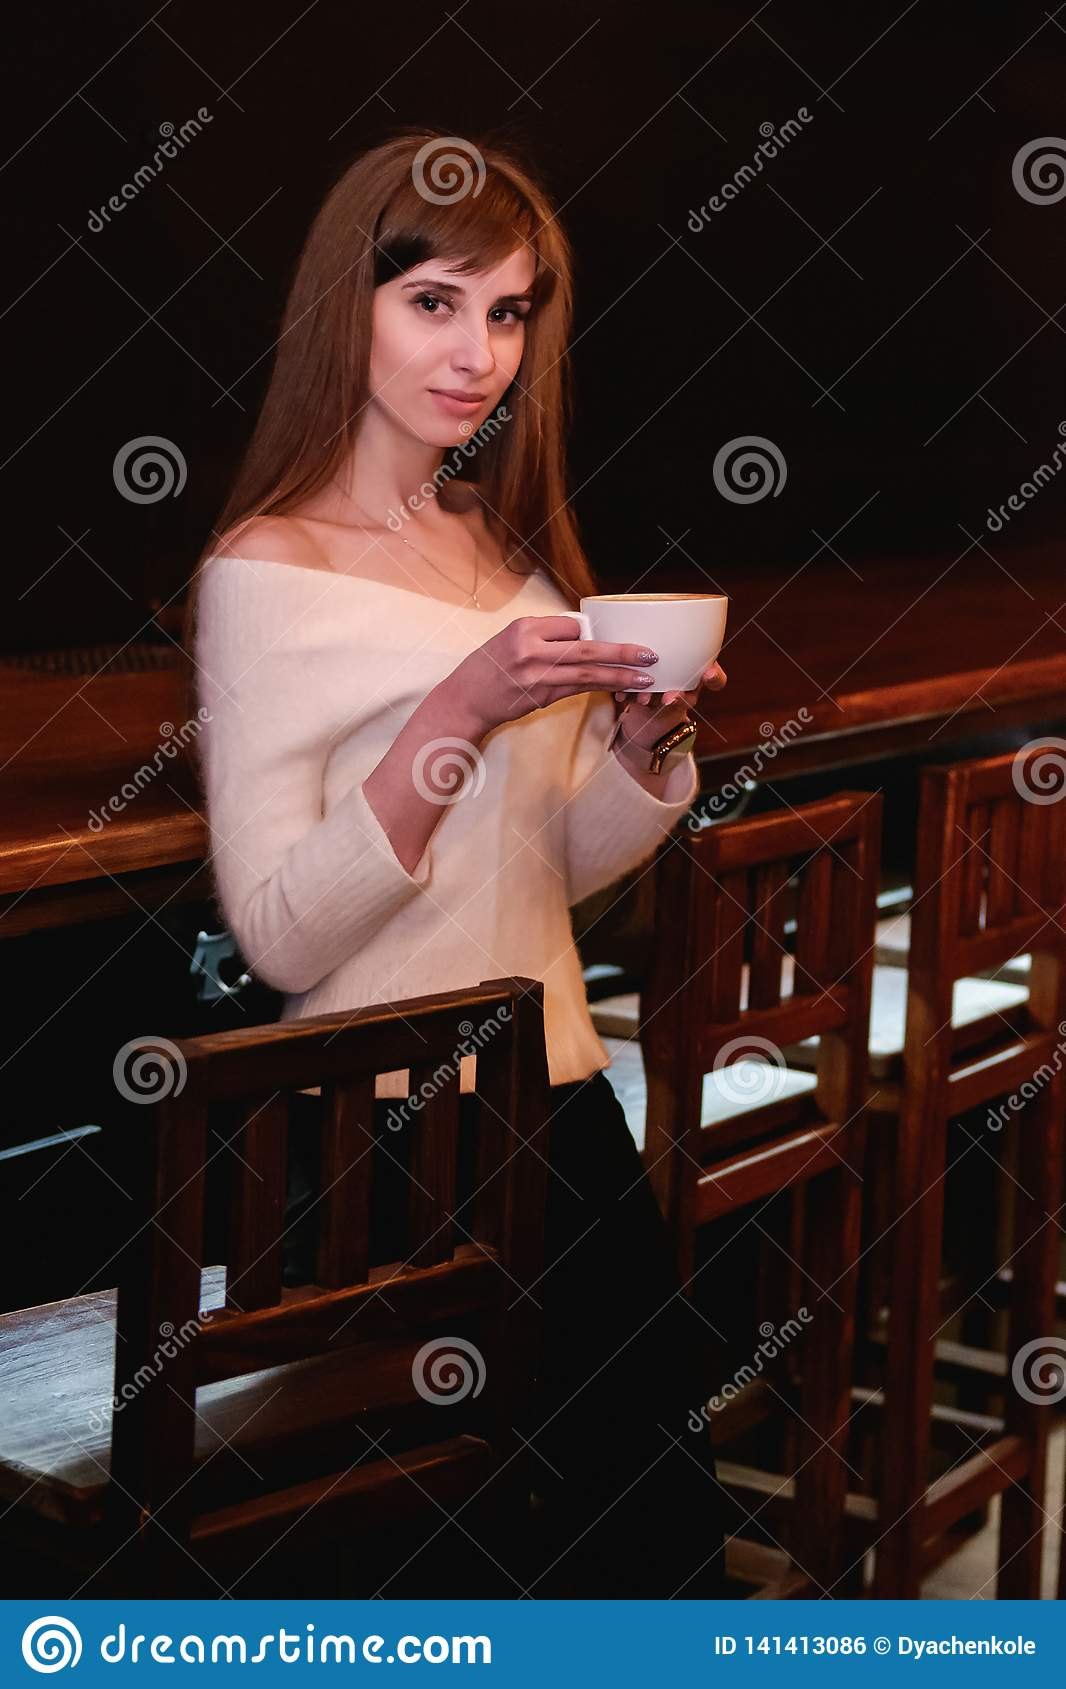 Long-haired beautiful girl in a white sweater is standing in a coffee shop at a wooden table with a cup, a lonely girl